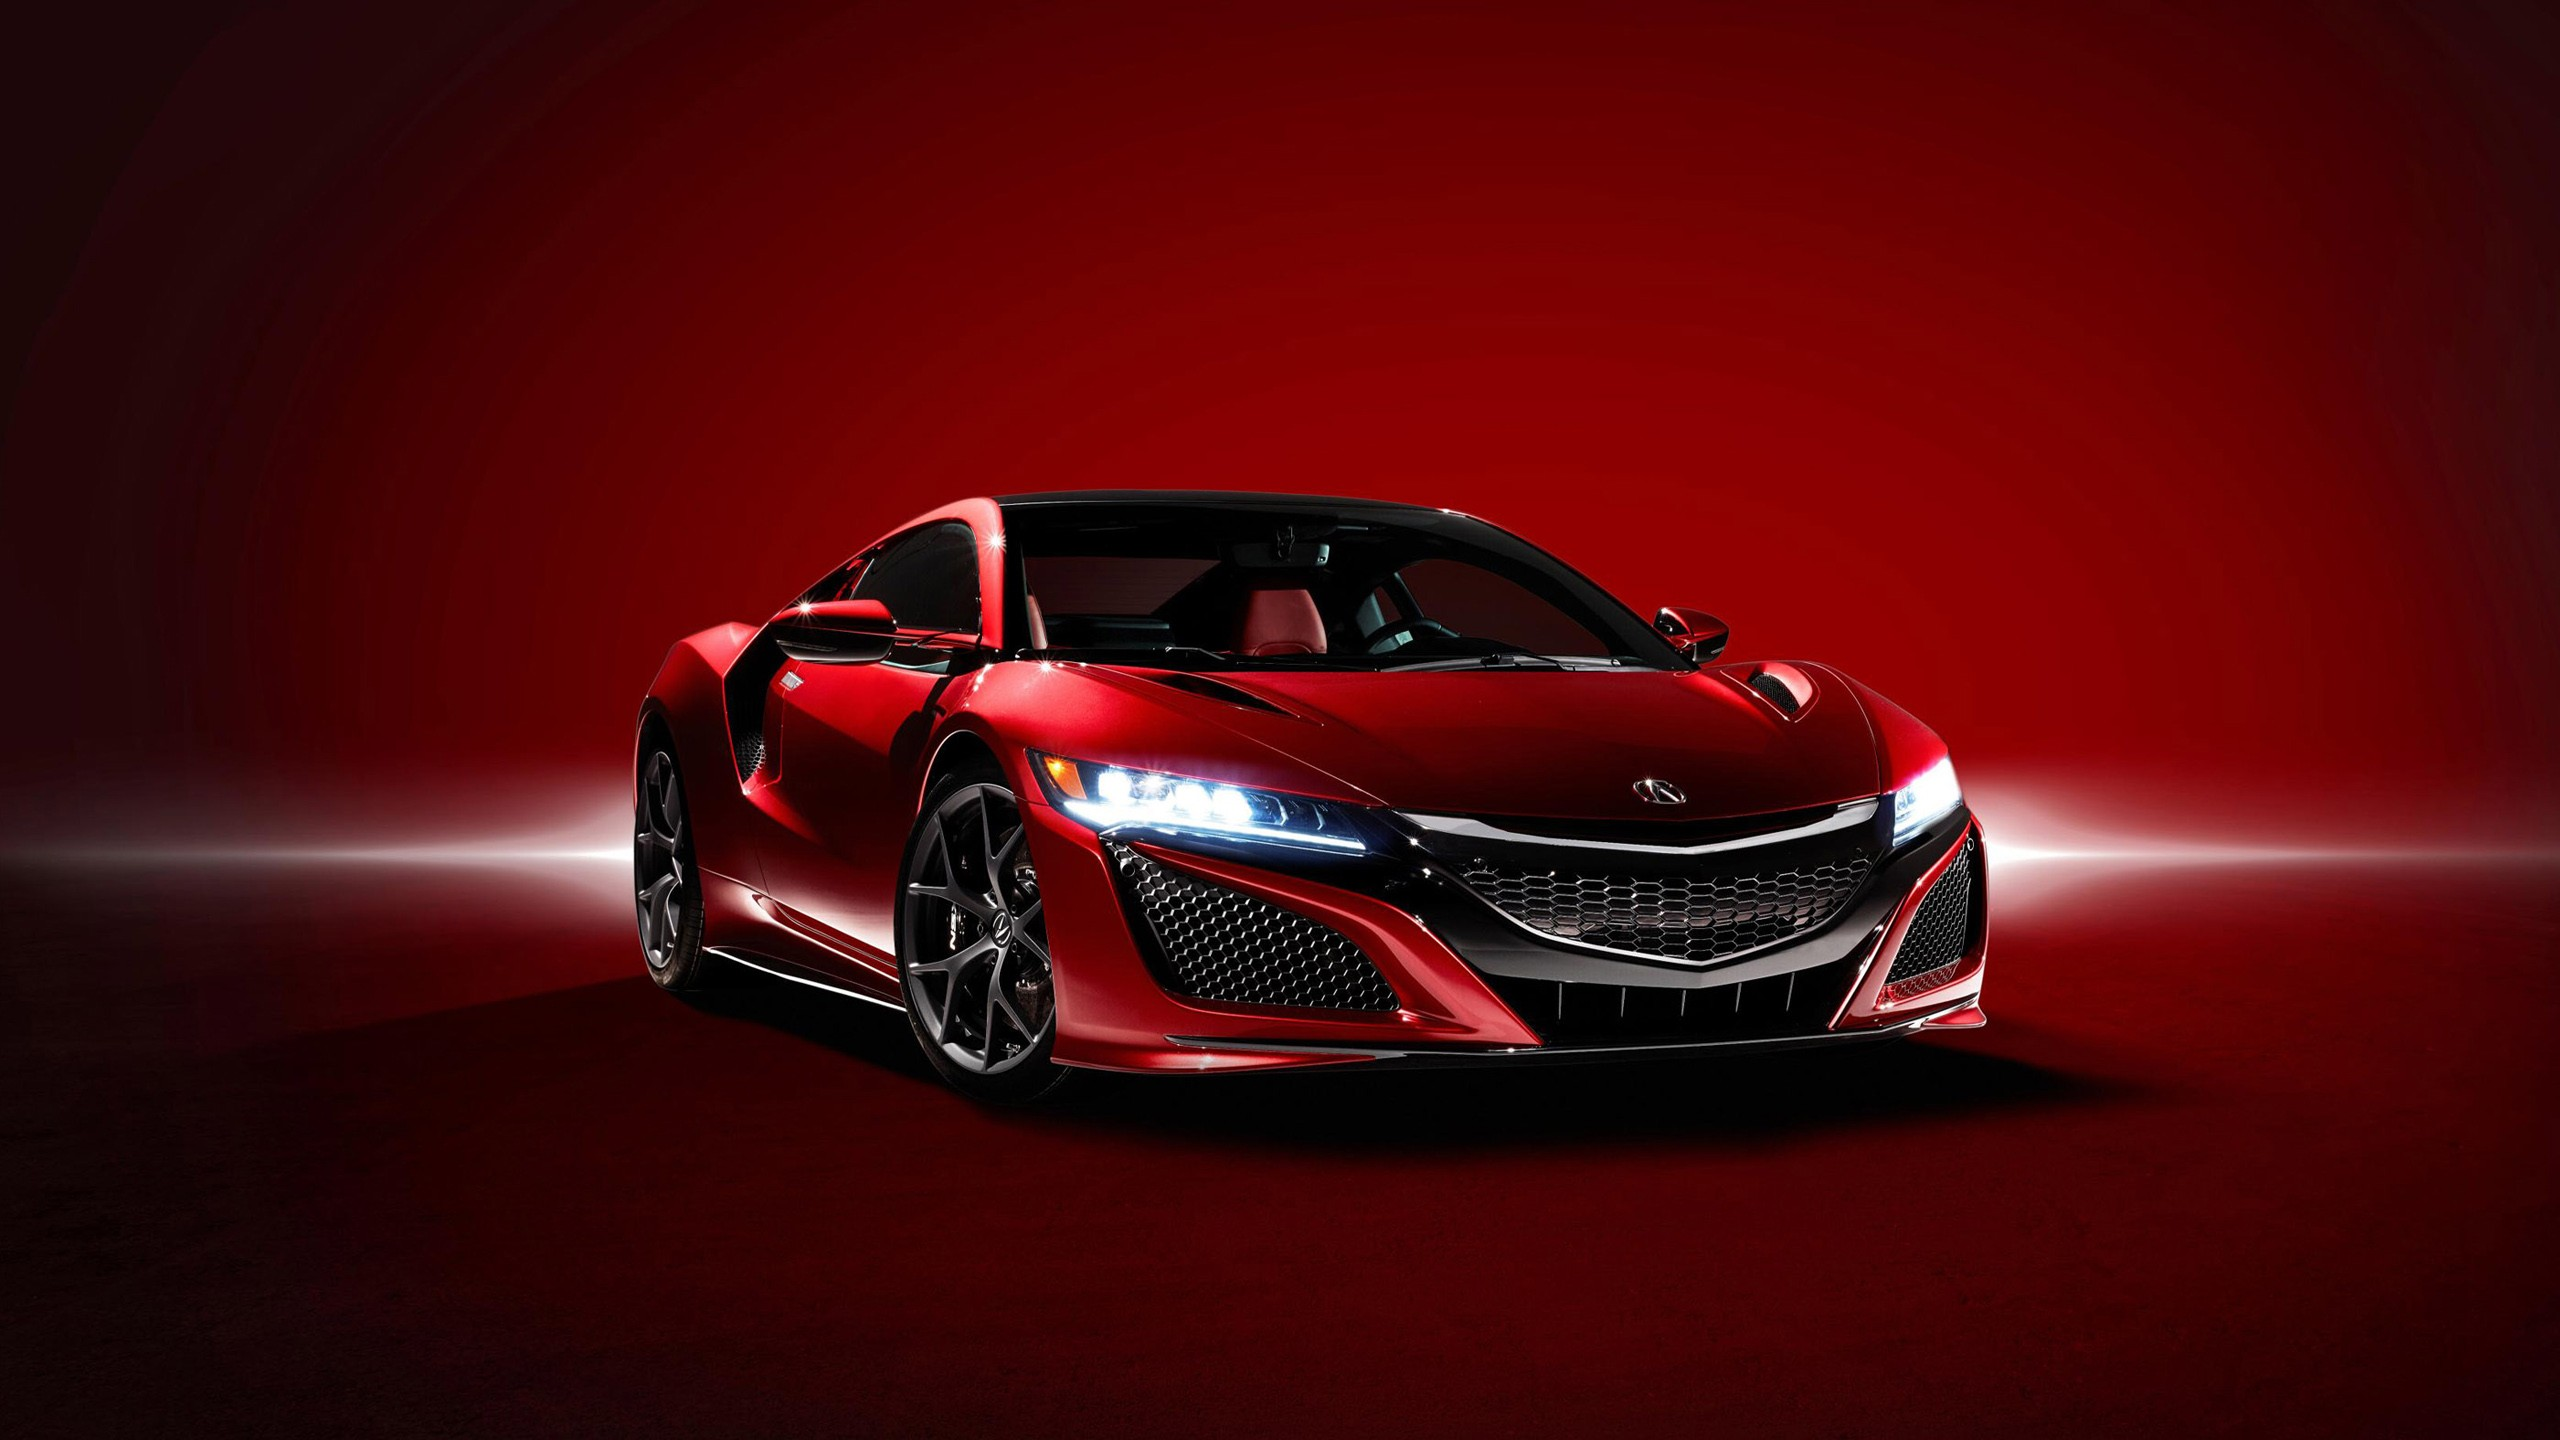 Super Hd Wallpapers Iphone X 2016 Acura Nsx Supercar Wallpapers Hd Wallpapers Id 14555